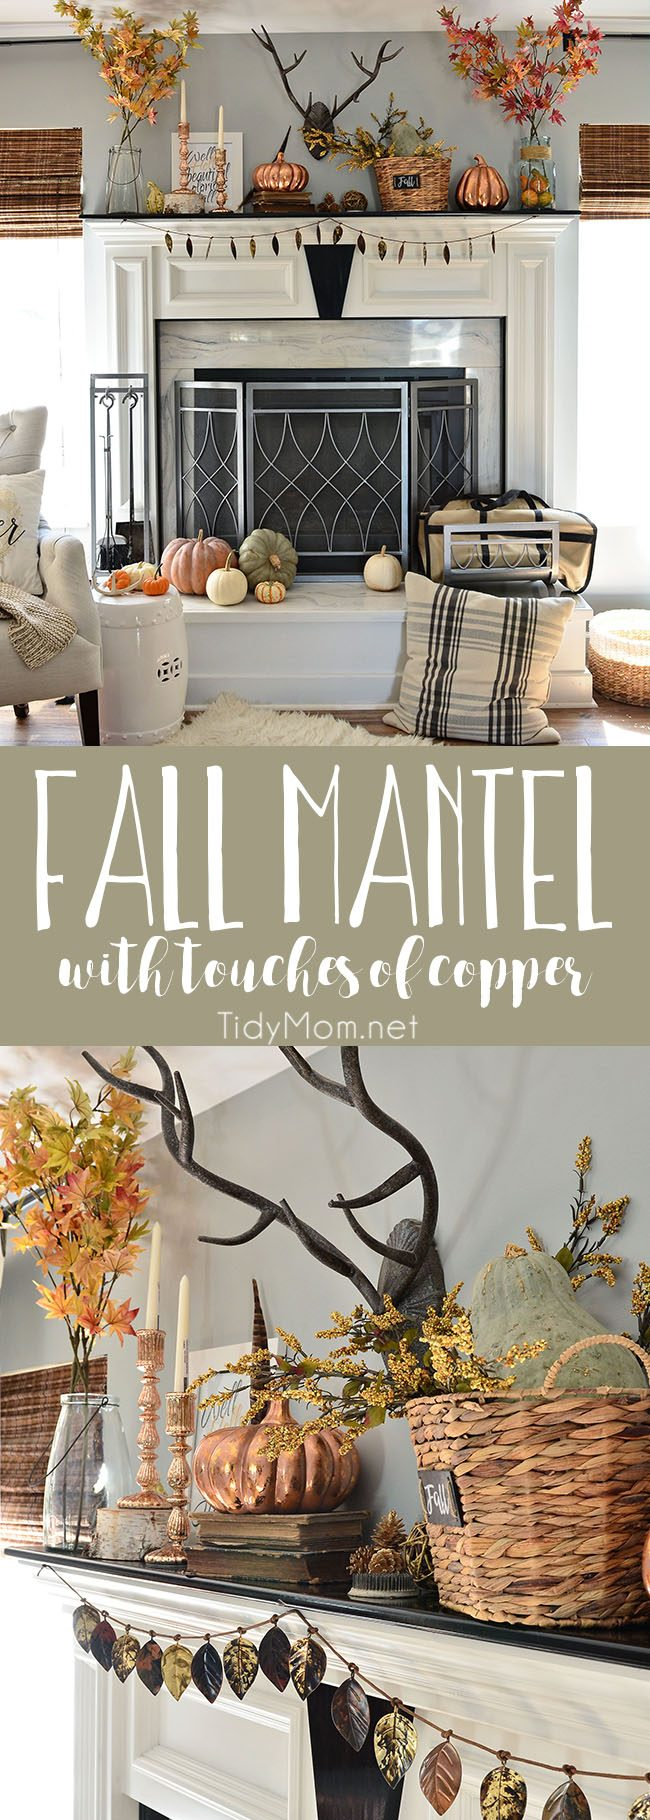 Inspiring Fall Mantel with touches of copper and rose gold